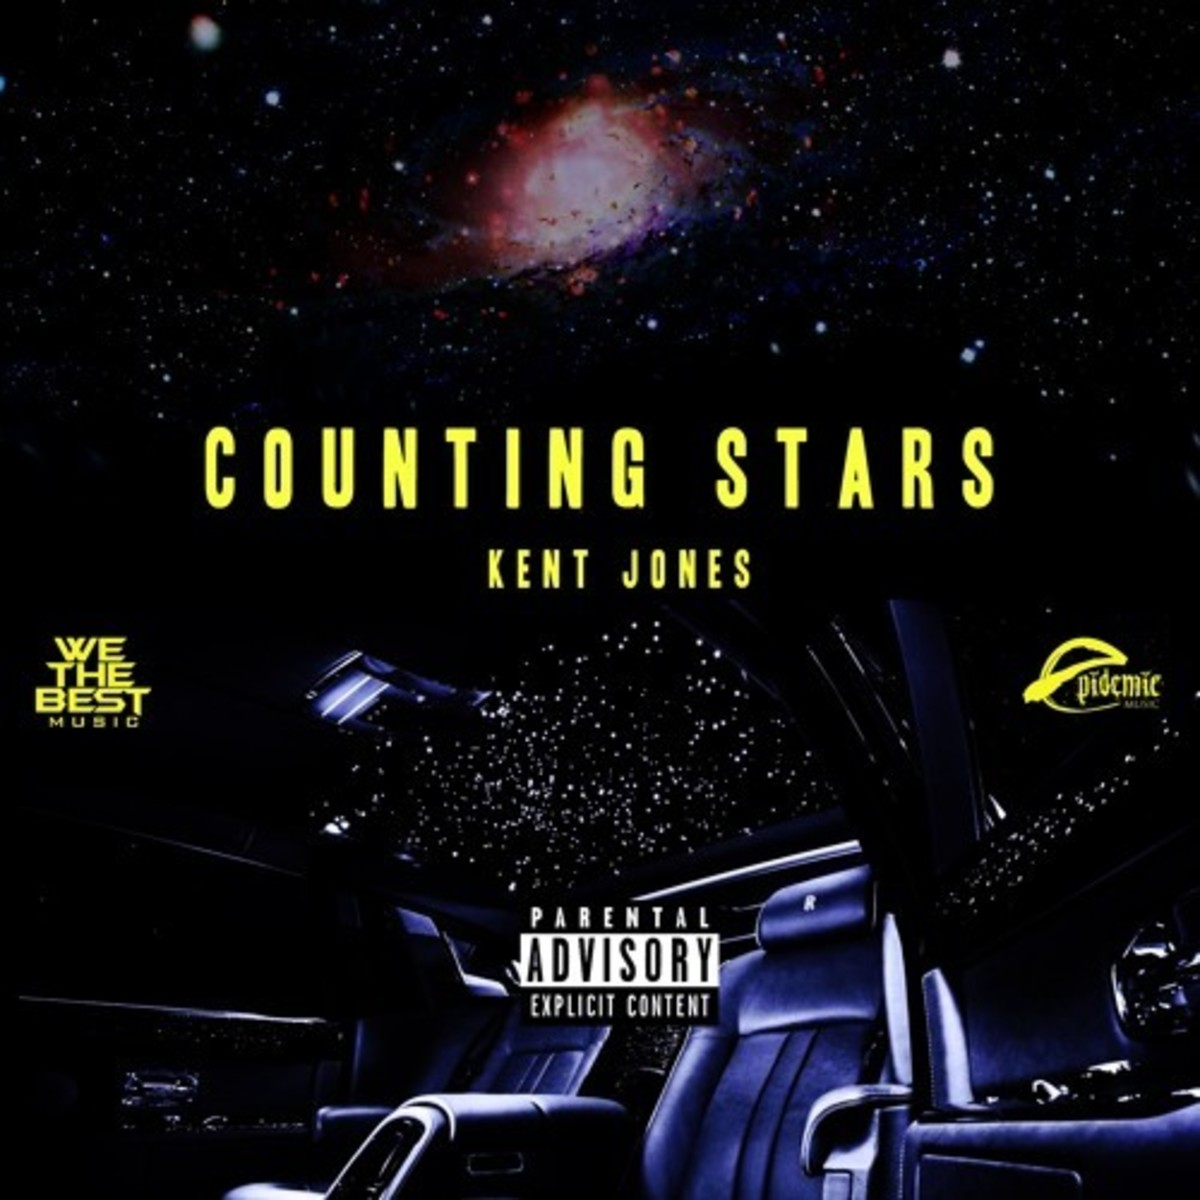 kent-jones-counting-stars.jpg